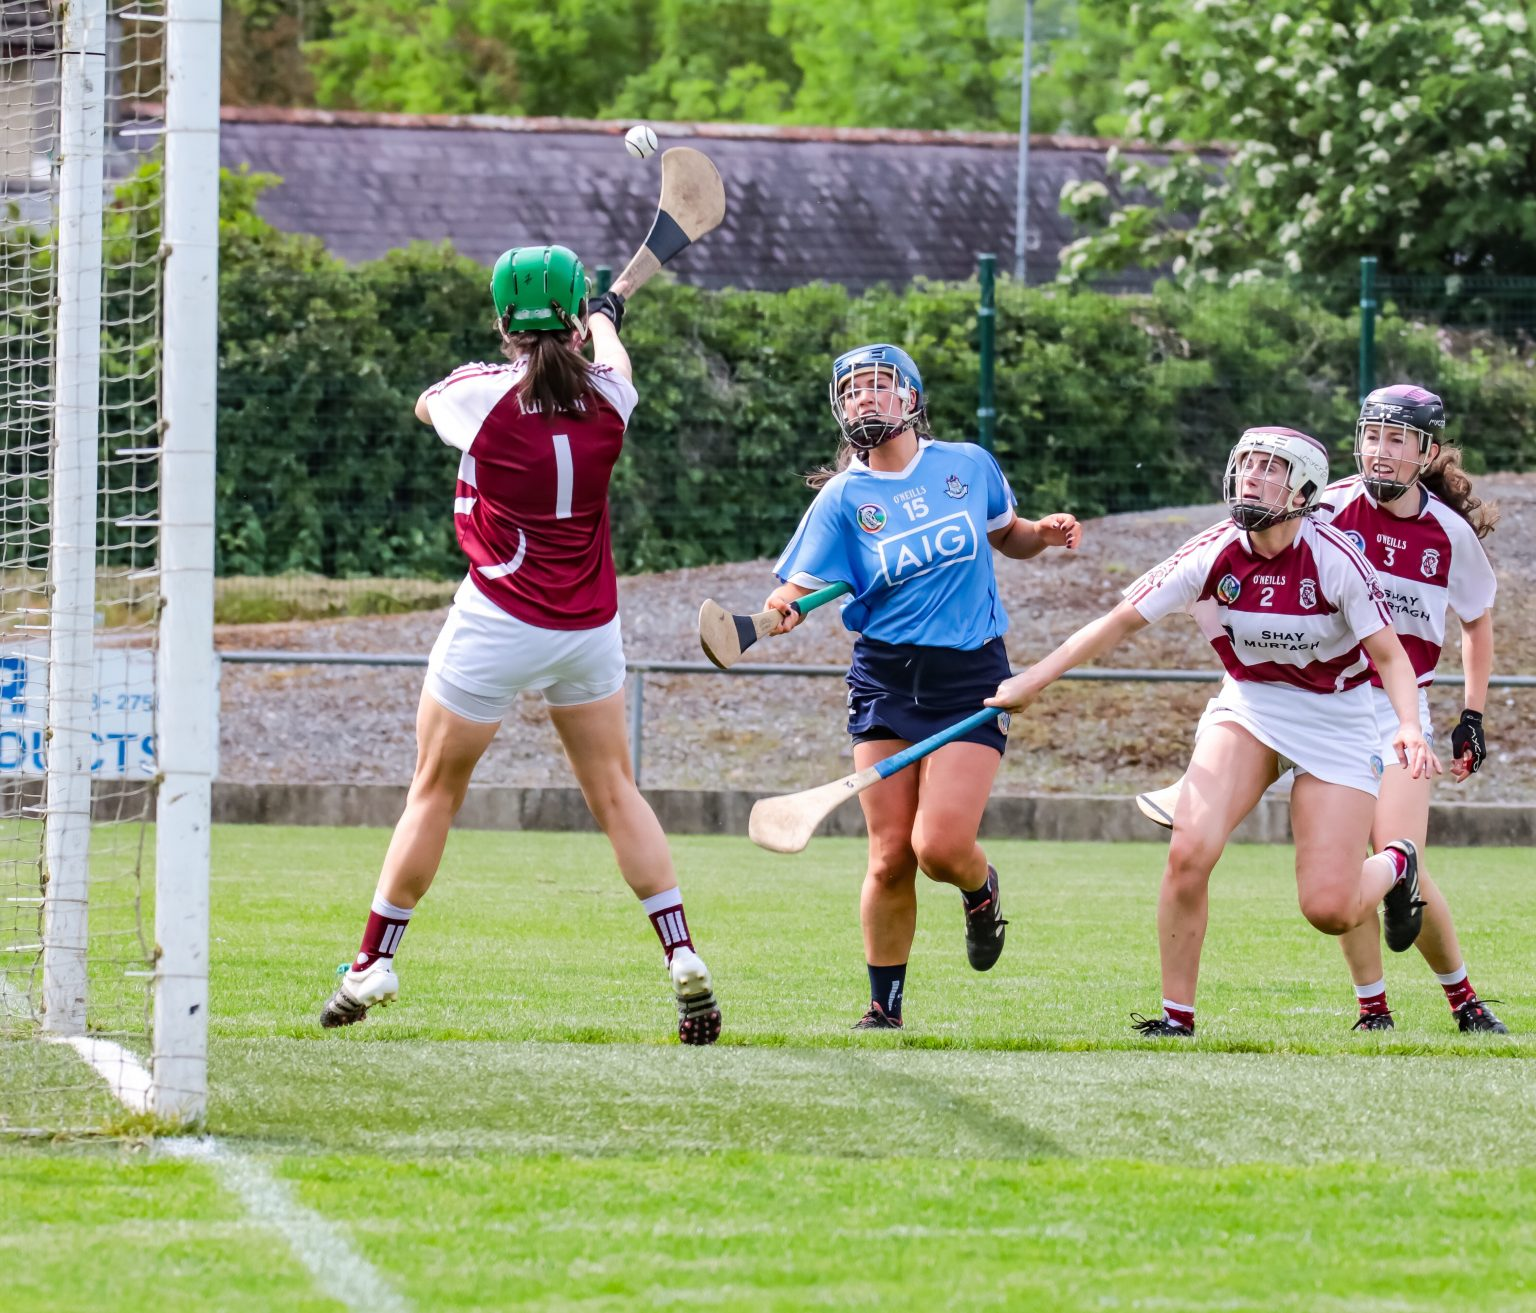 Dublin Camogie forward in a sky blue jersey flicks the ball over the Westmeath keepers head and over the bar for a point